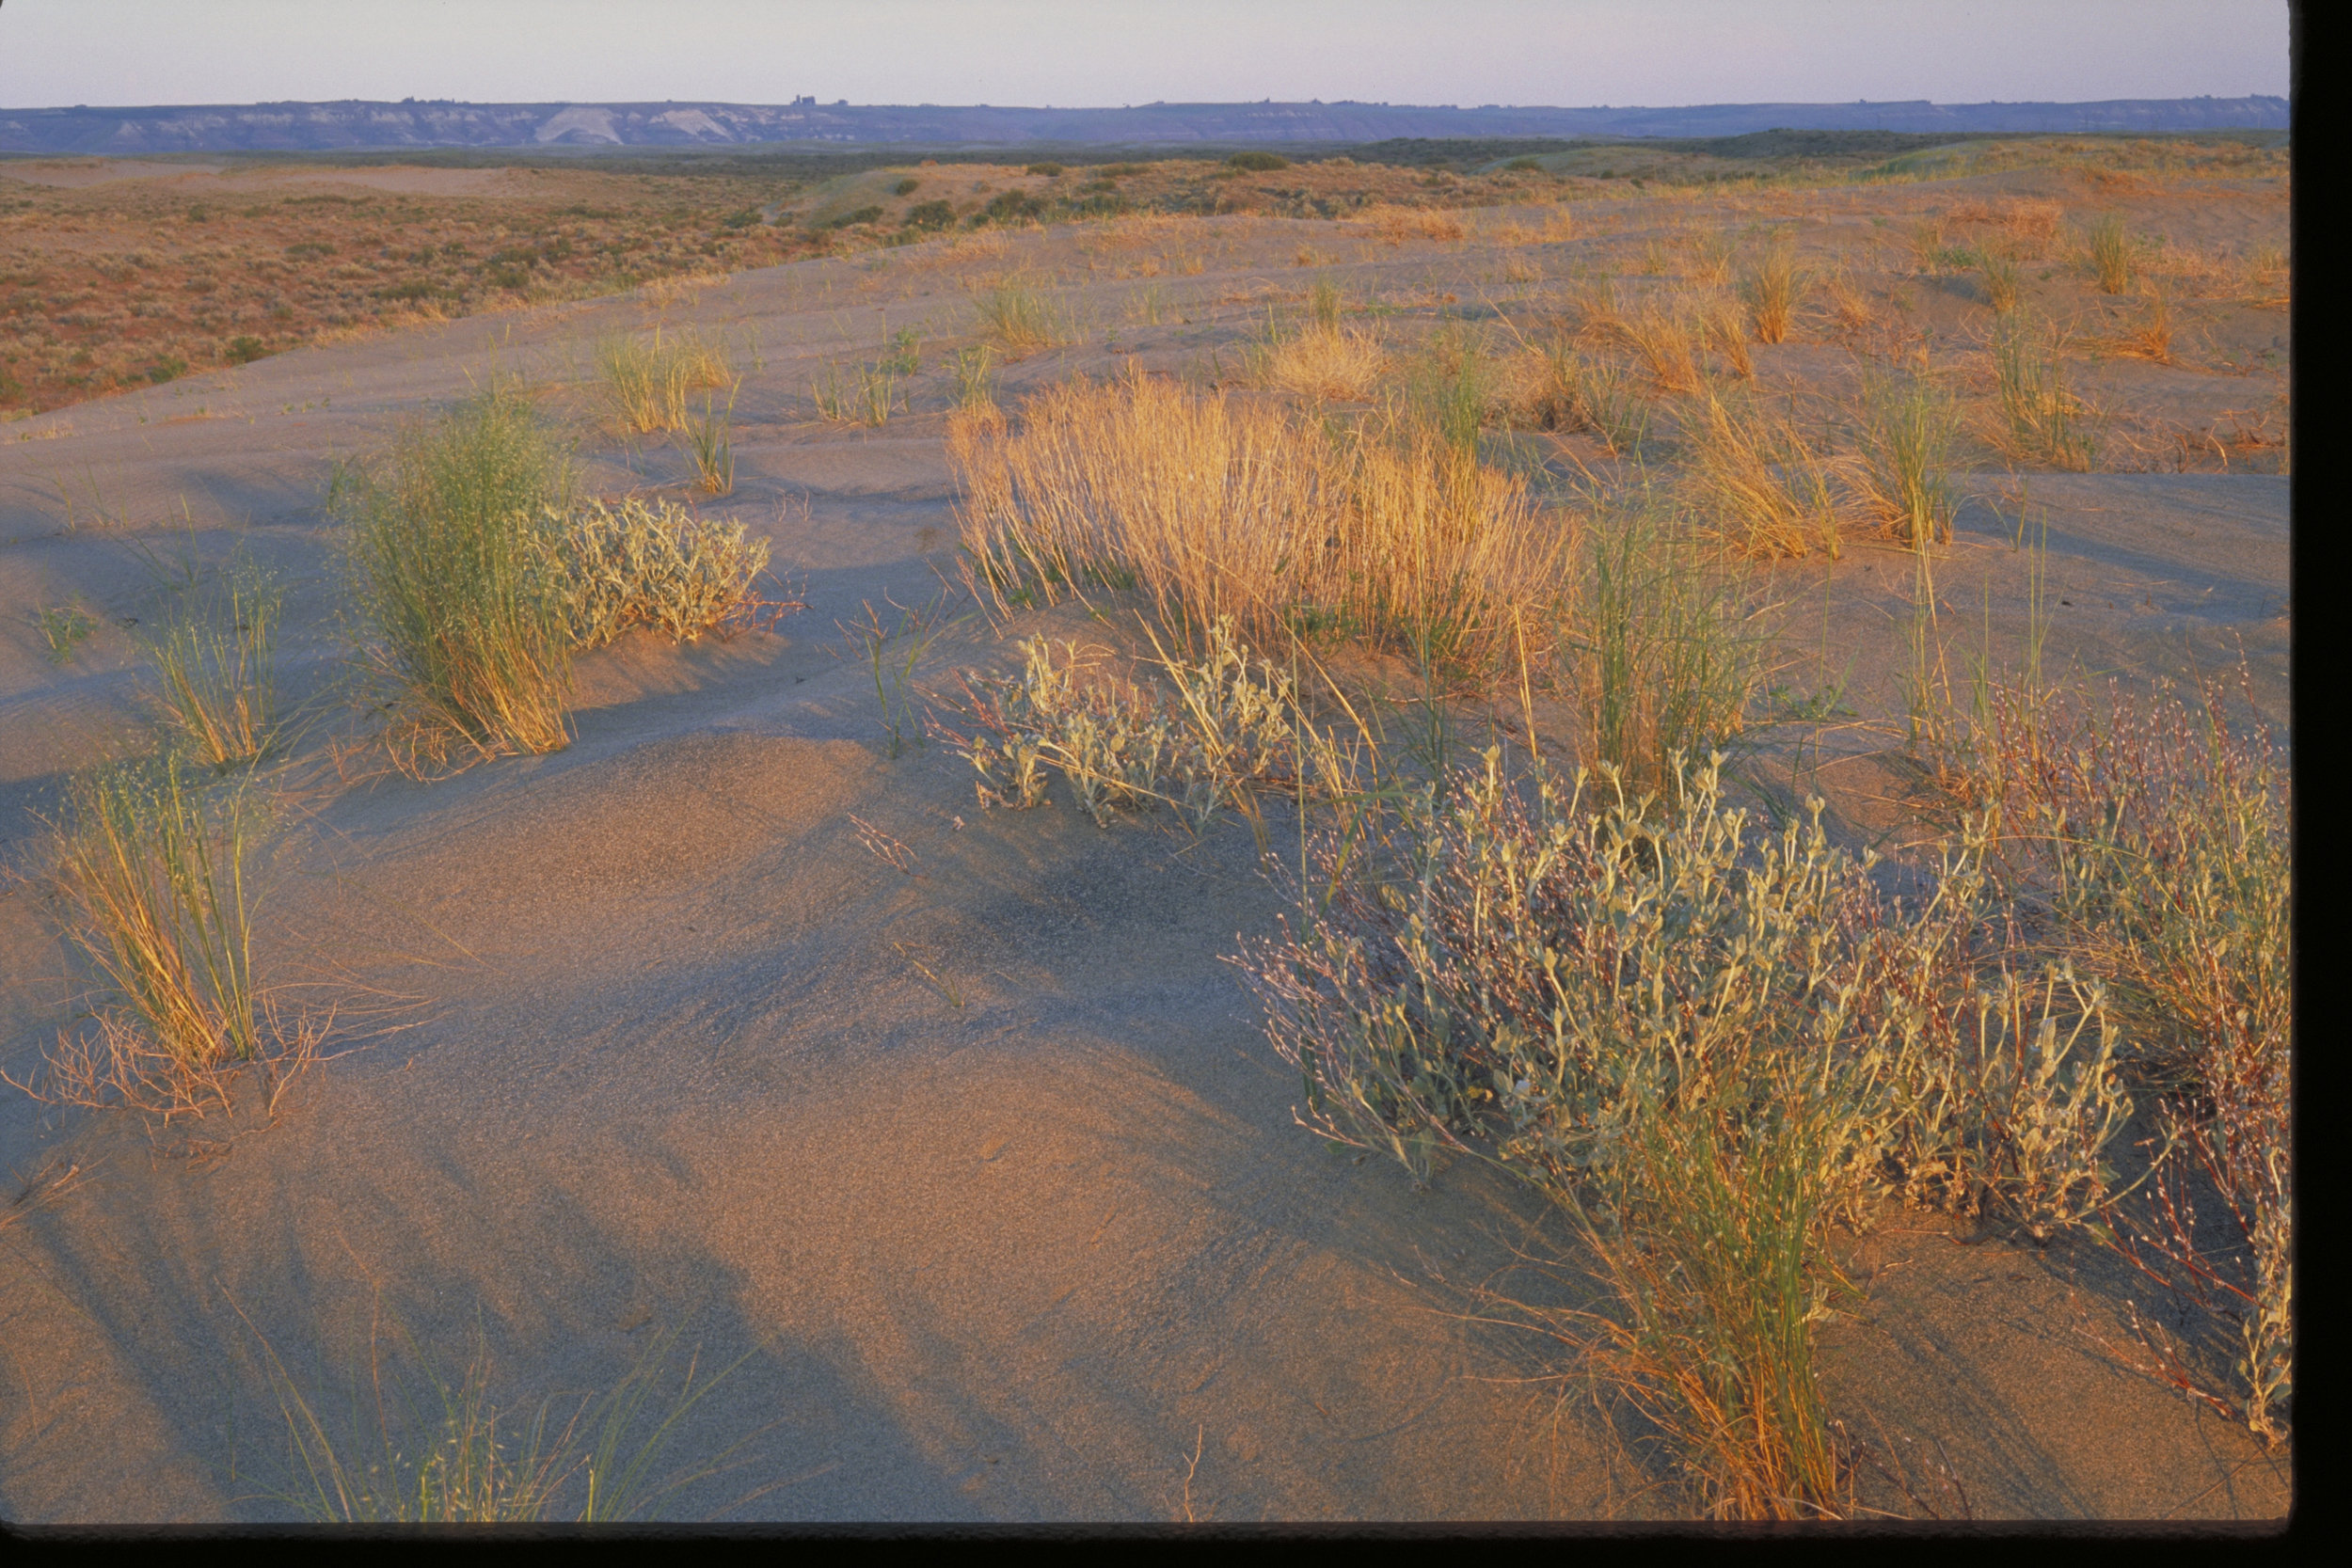 Sand dunes at Hanford. Photo by Keith Lazelle.